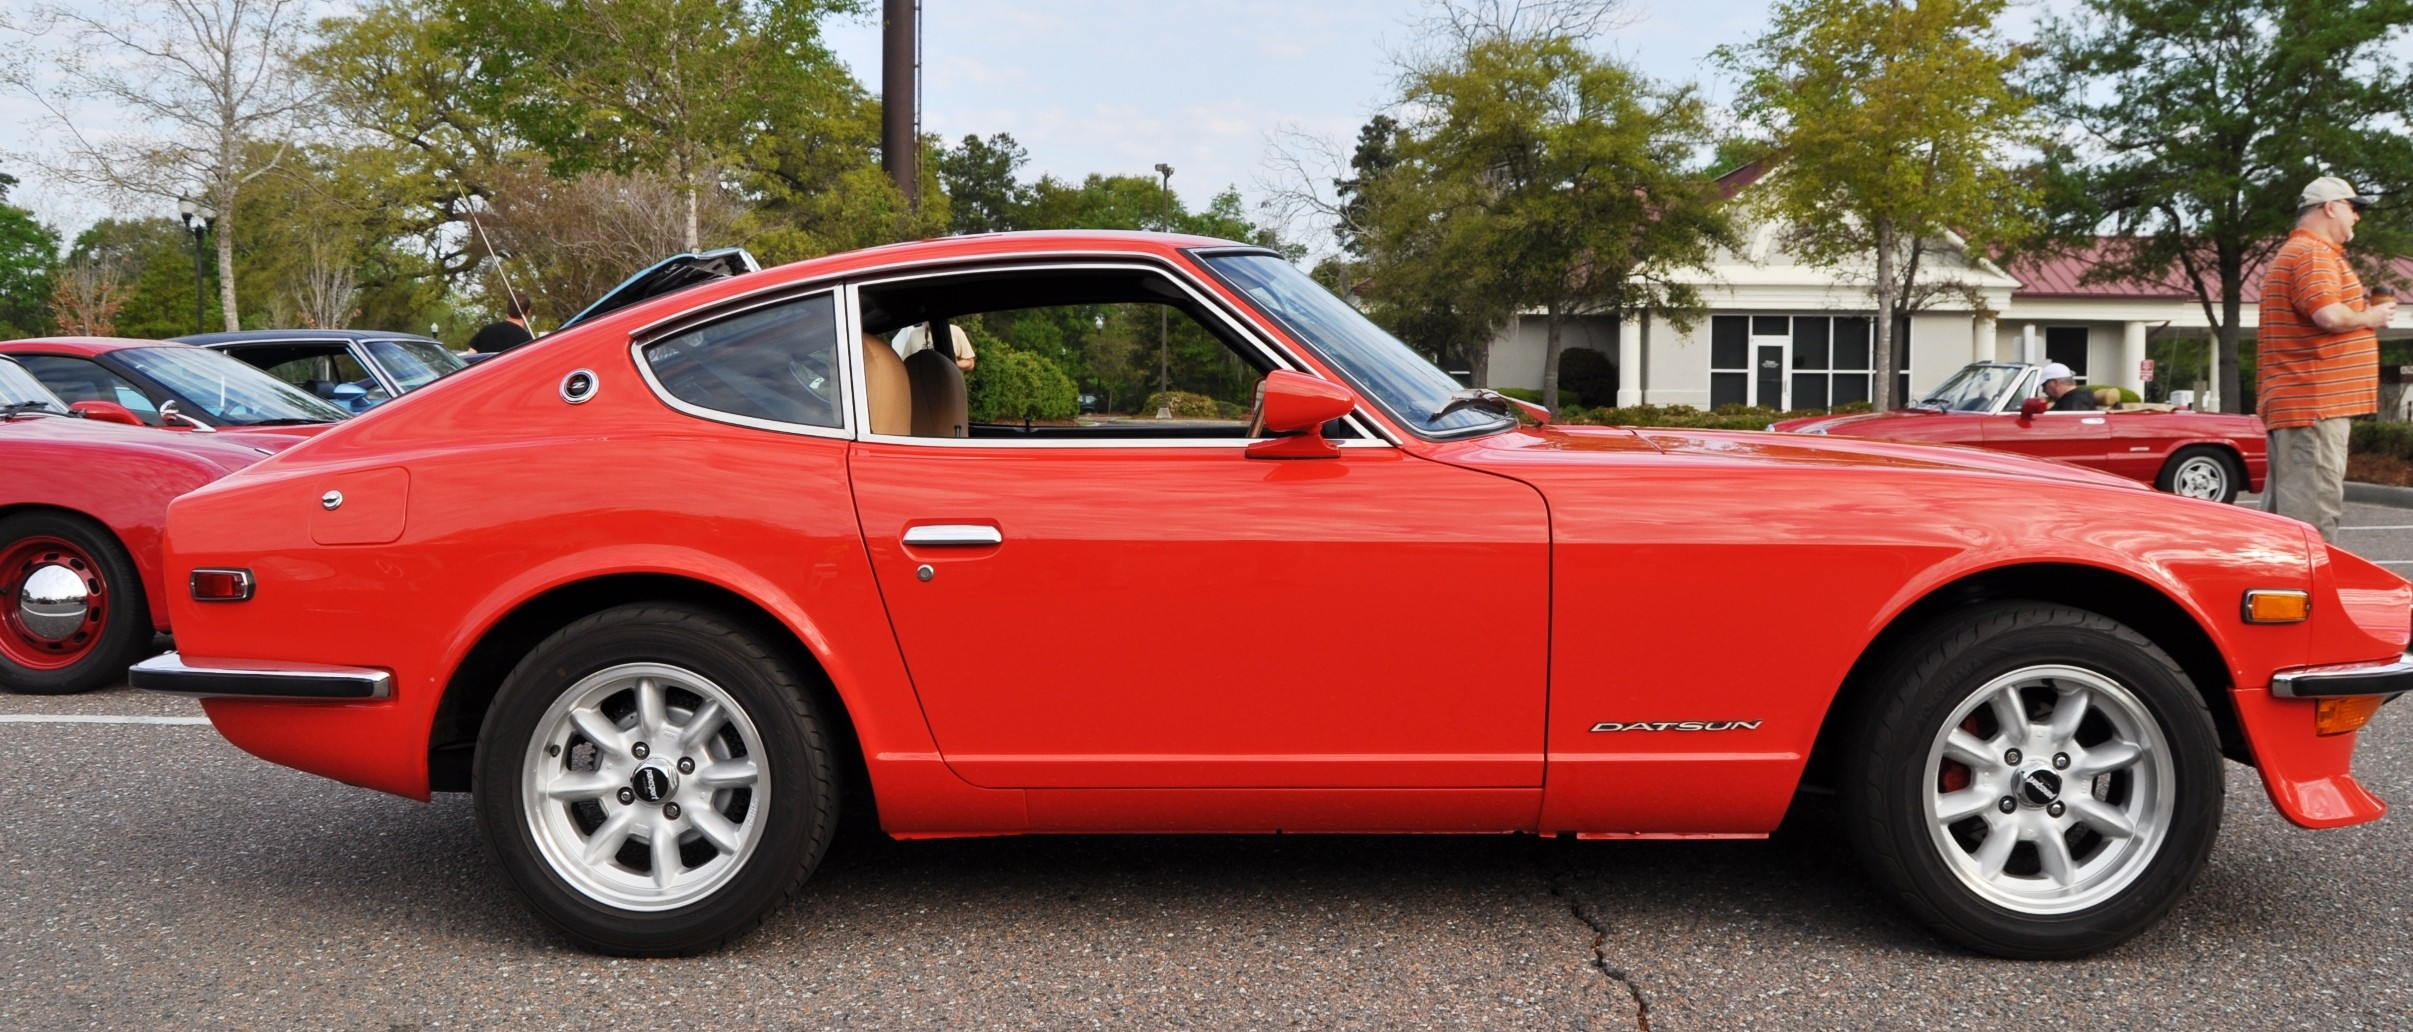 Toyota Of Orange >> Classic Sports Cars -- Datsun 240Z at Cars & Coffee -- Immaculate in 30 Glowing Orange Photos